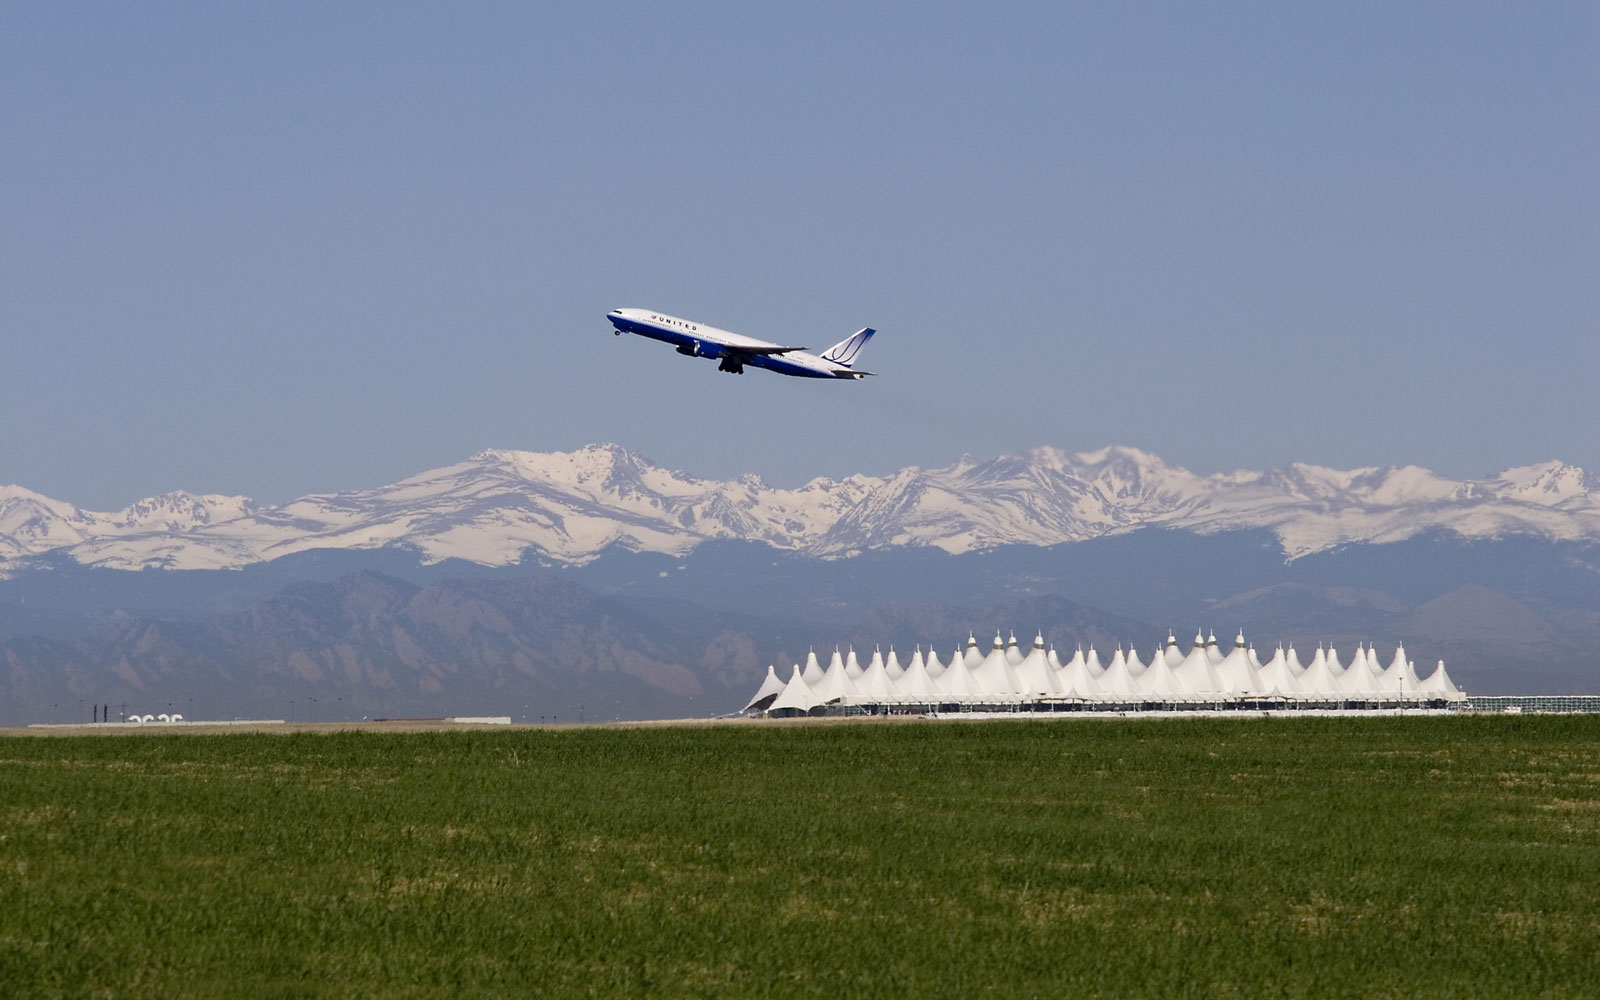 America's best and worst airports: Denver (DEN)